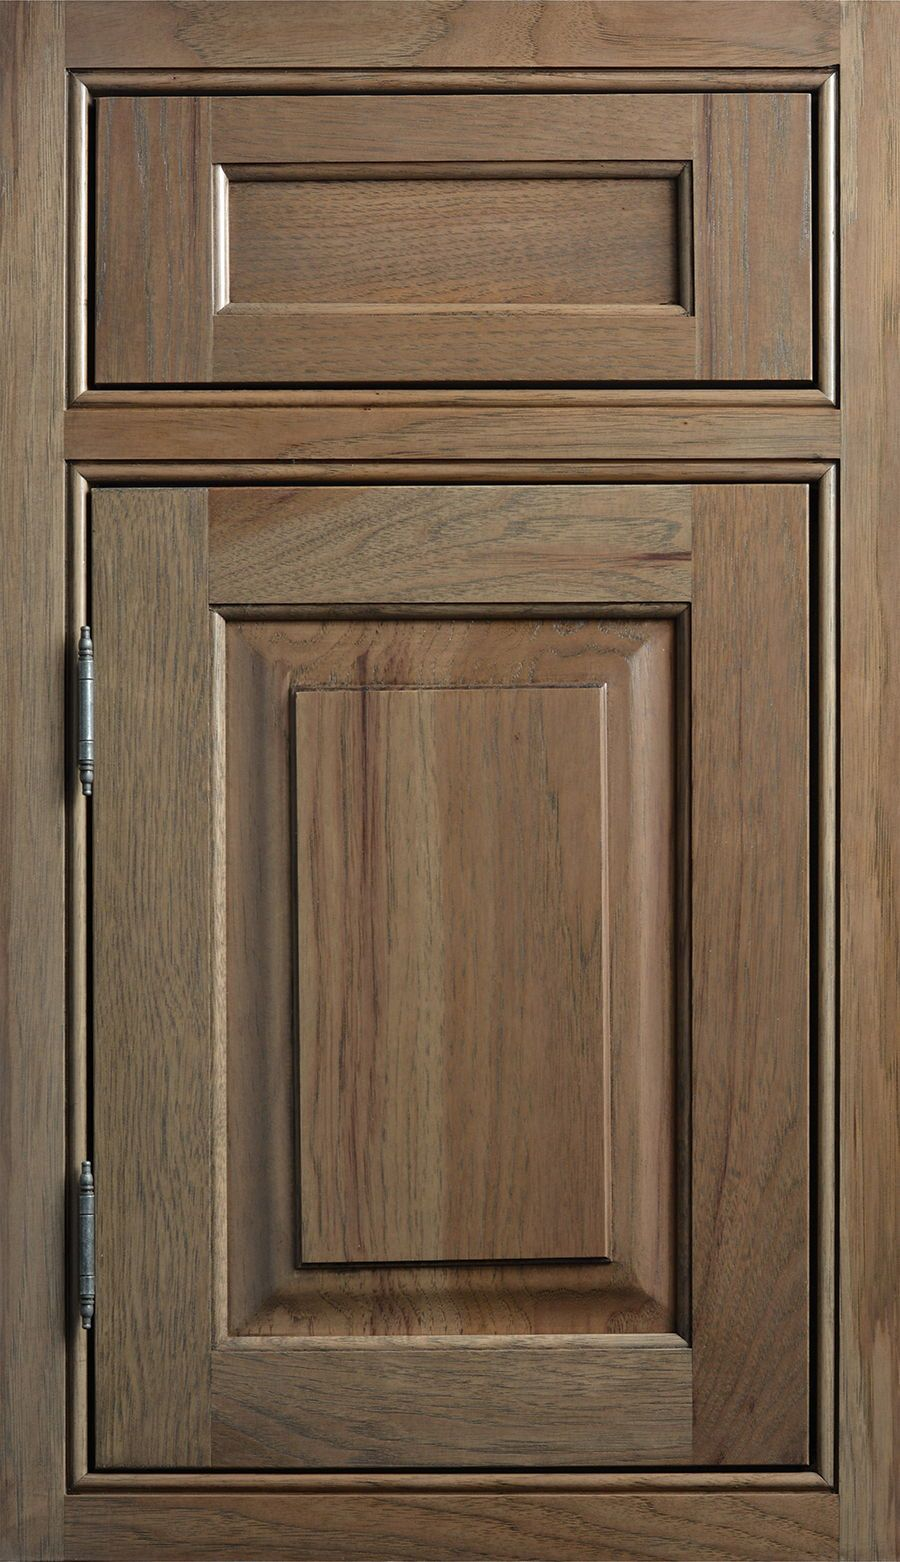 Dura Supreme Cabinetry Door Style Kendall Inset Cabinet Door Style Shown In The Morel St Raised Panel Cabinet Doors Cabinet Door Styles Raised Panel Cabinets